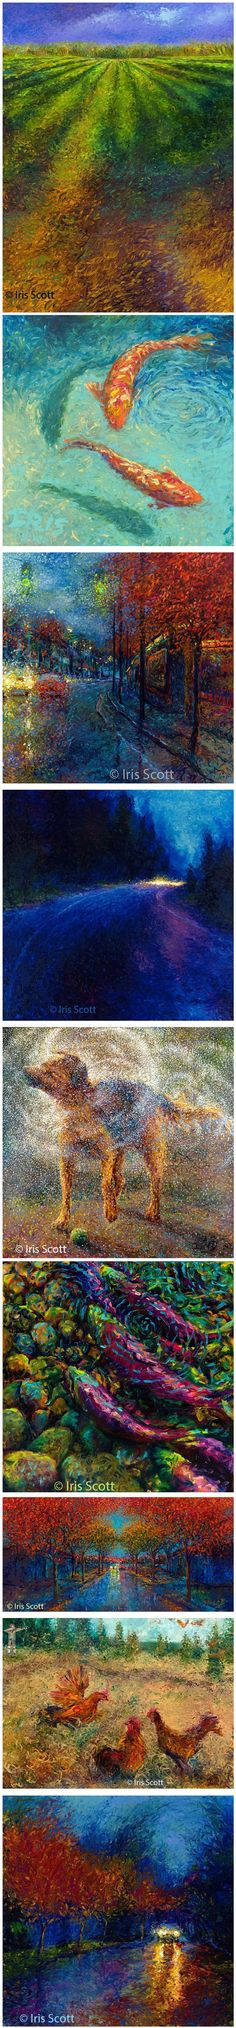 iris scott finger painting | Finger Paintings by Iris Scott